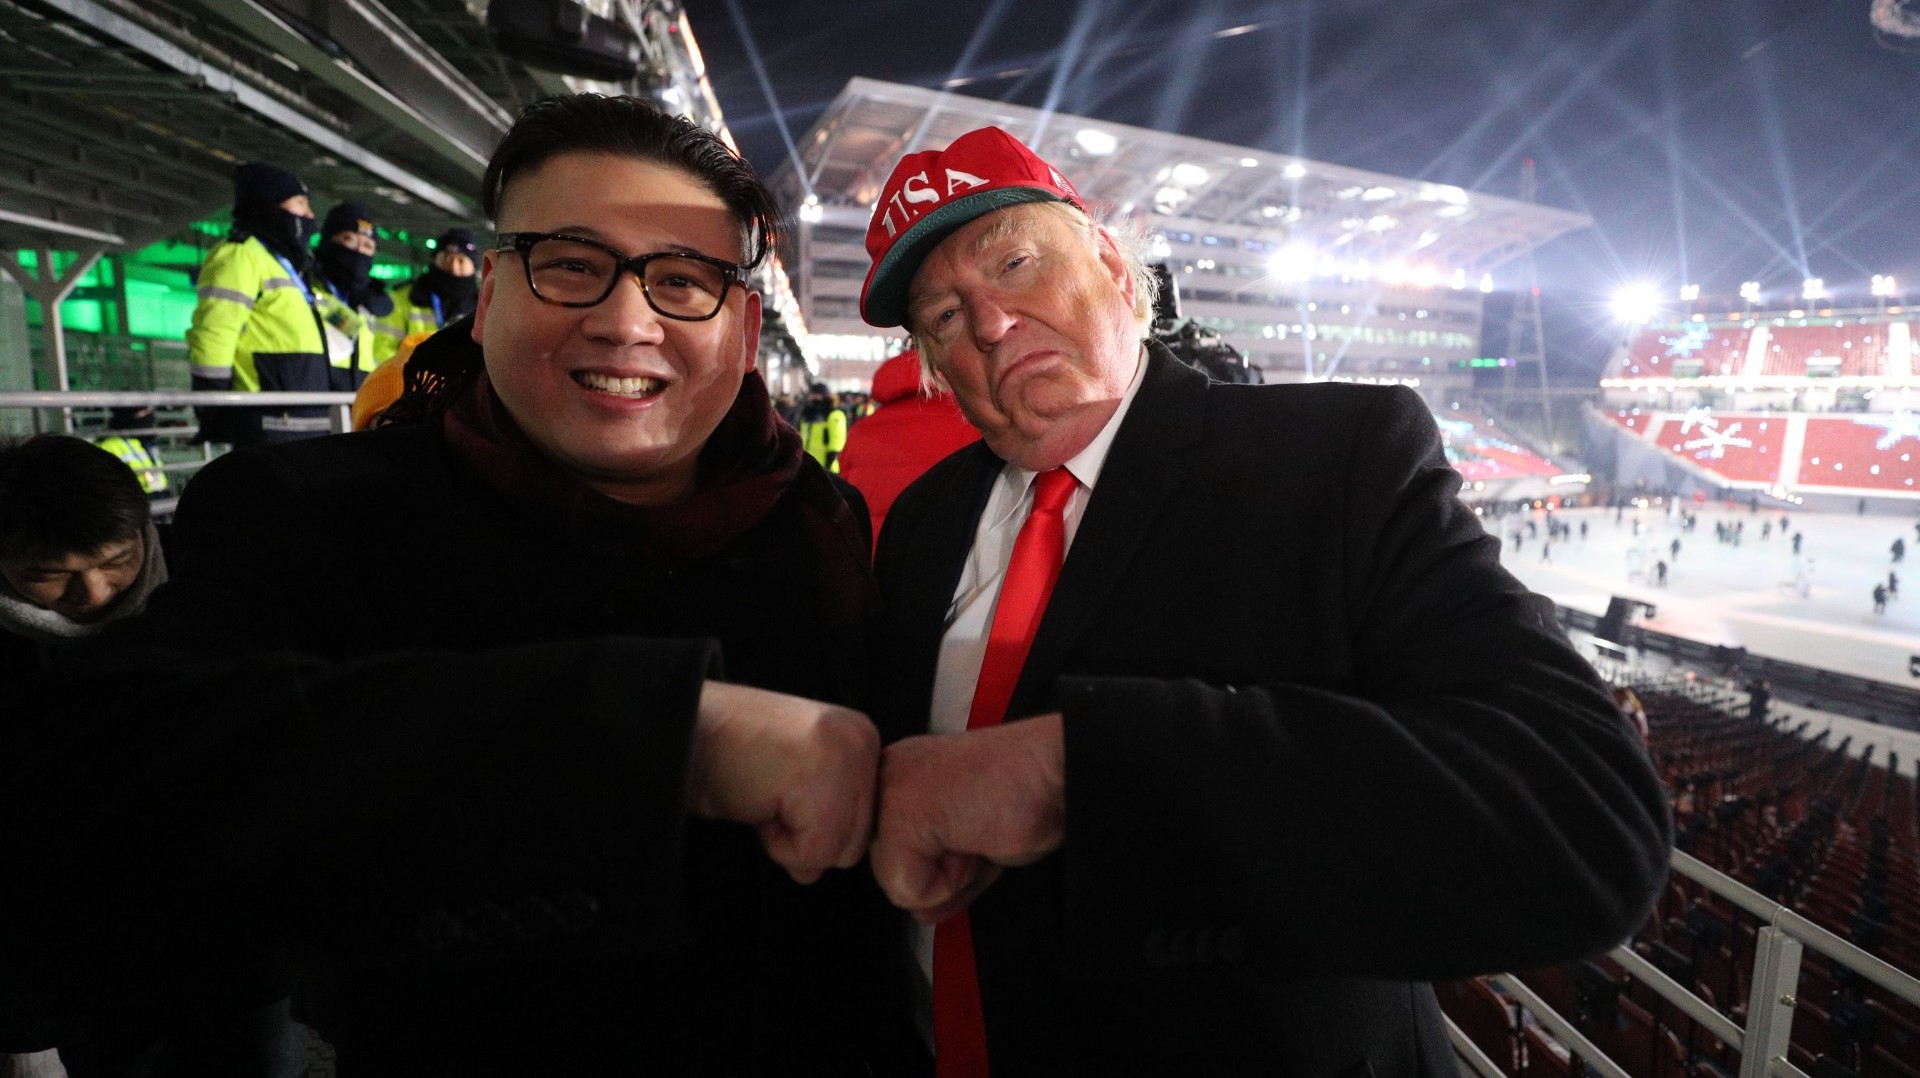 meet the press donald trump 1 10 16 football